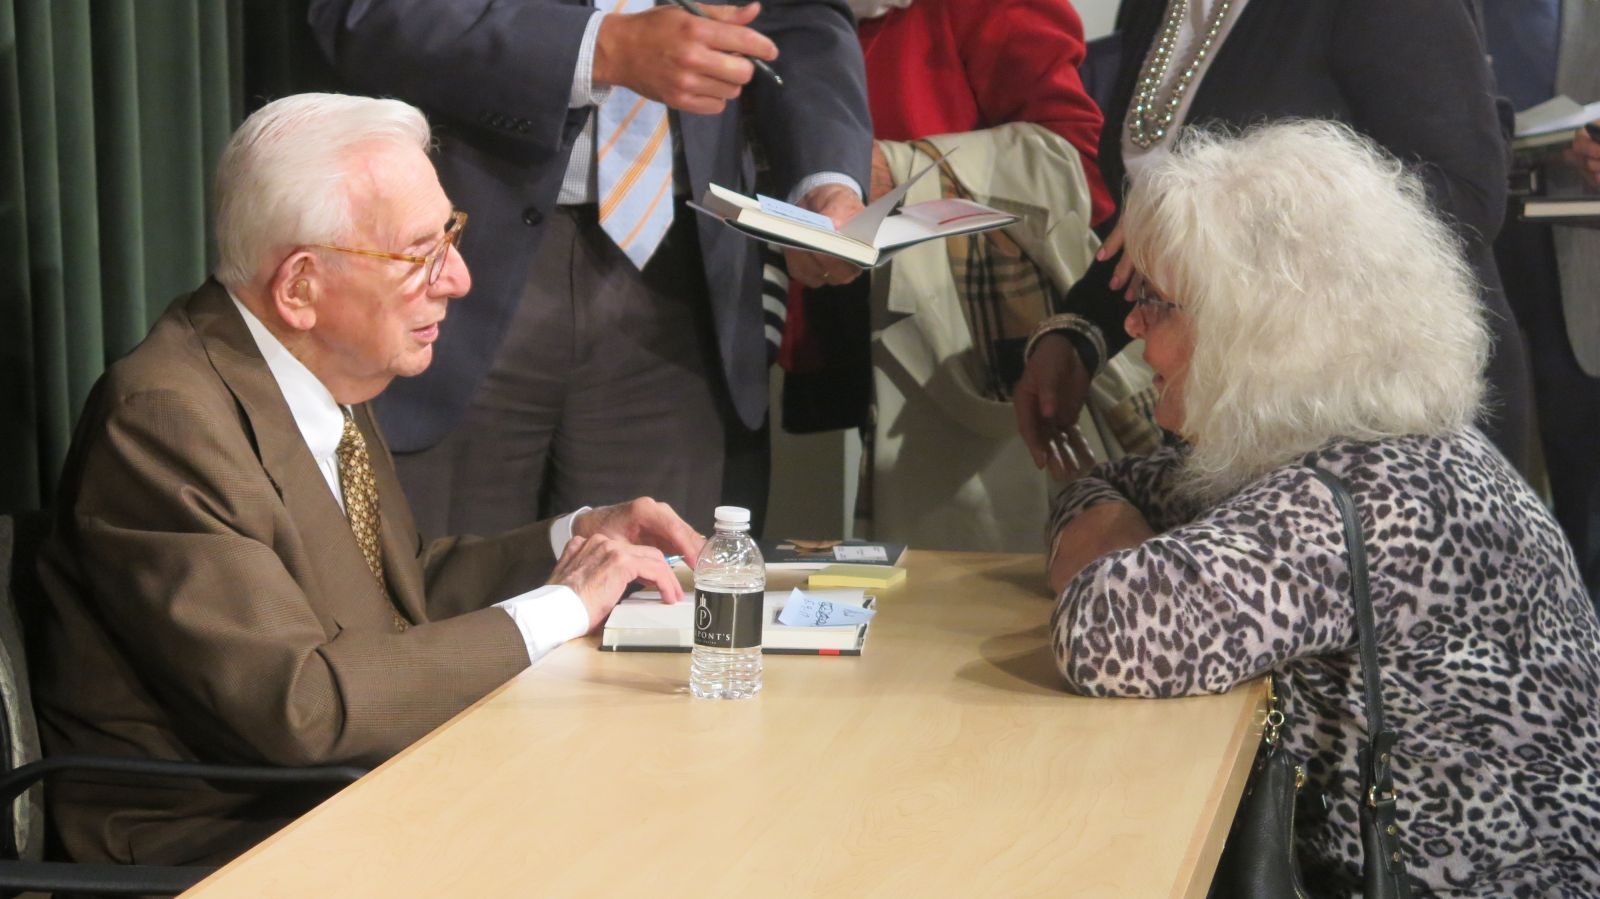 Henry Bloch signs books and visits with event attendees.